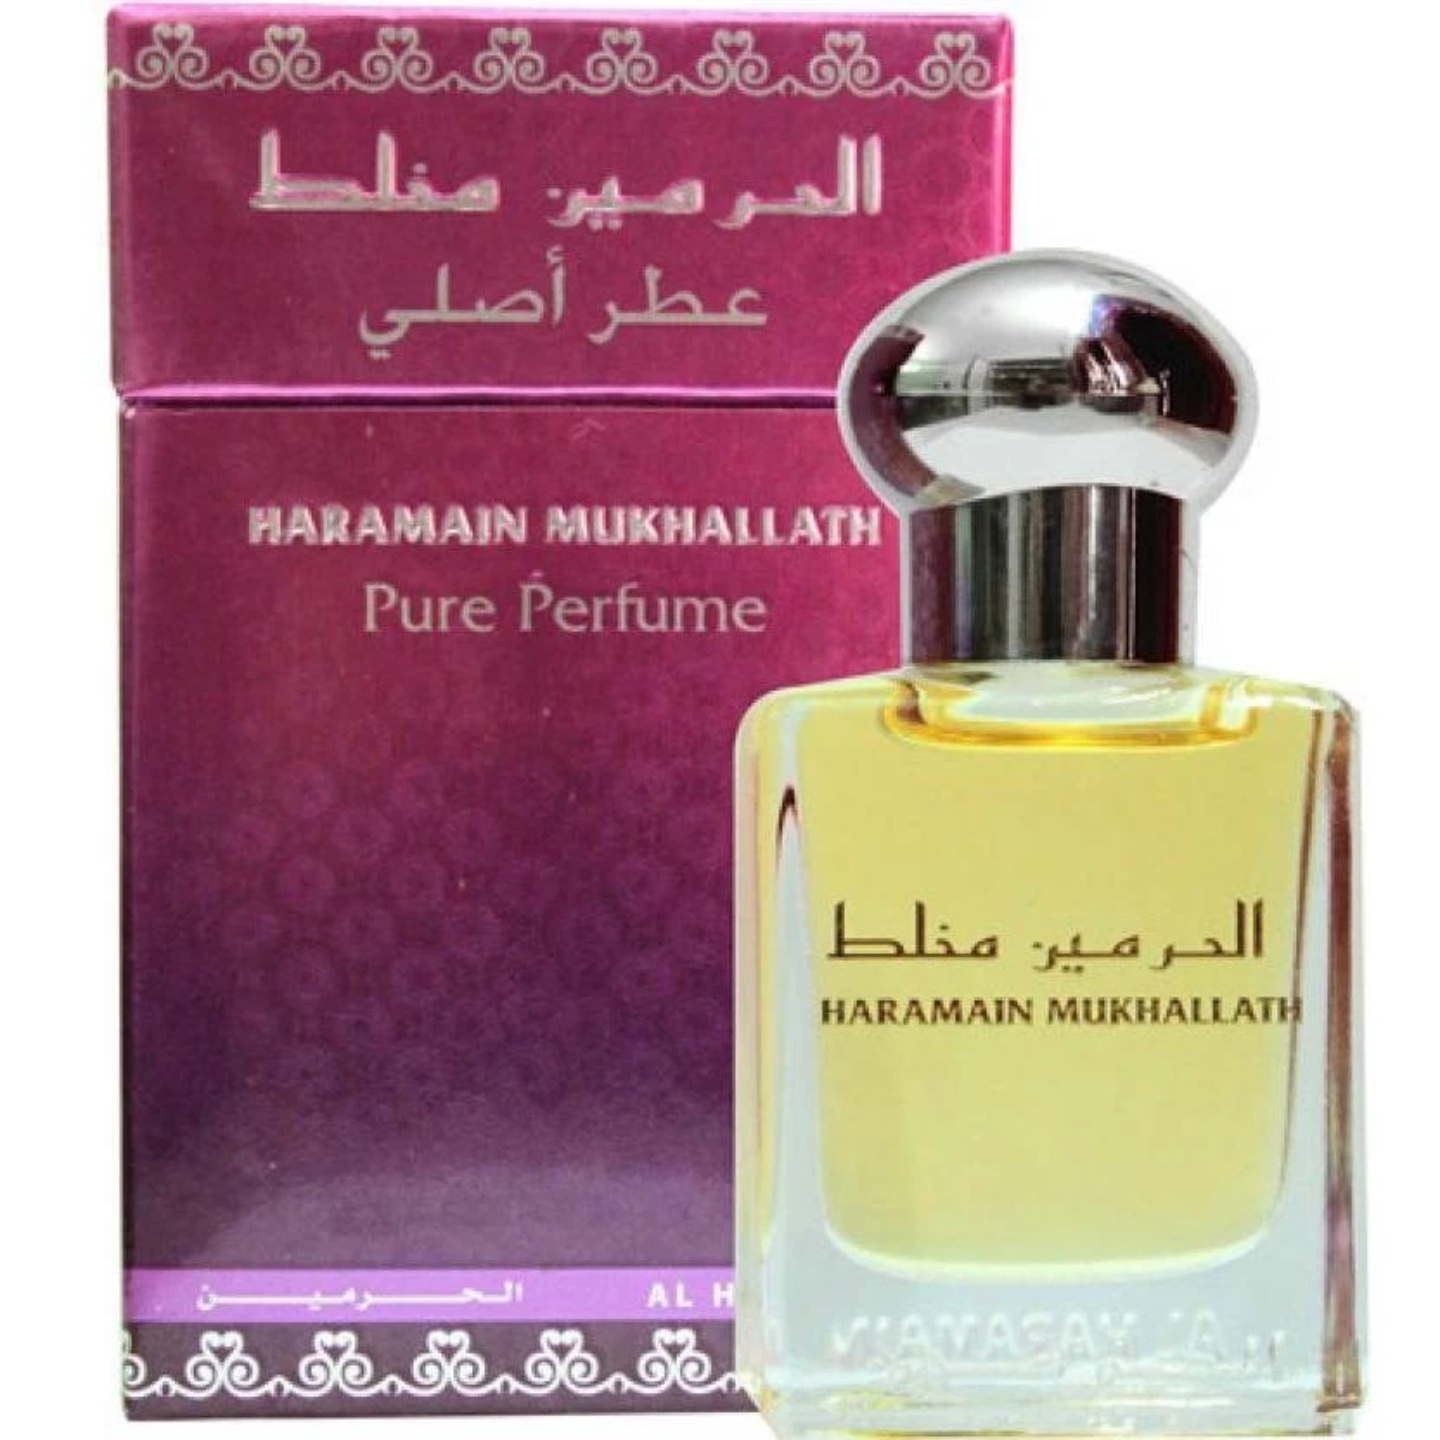 AL HARAMAIN MUKHALLATH ATTAR